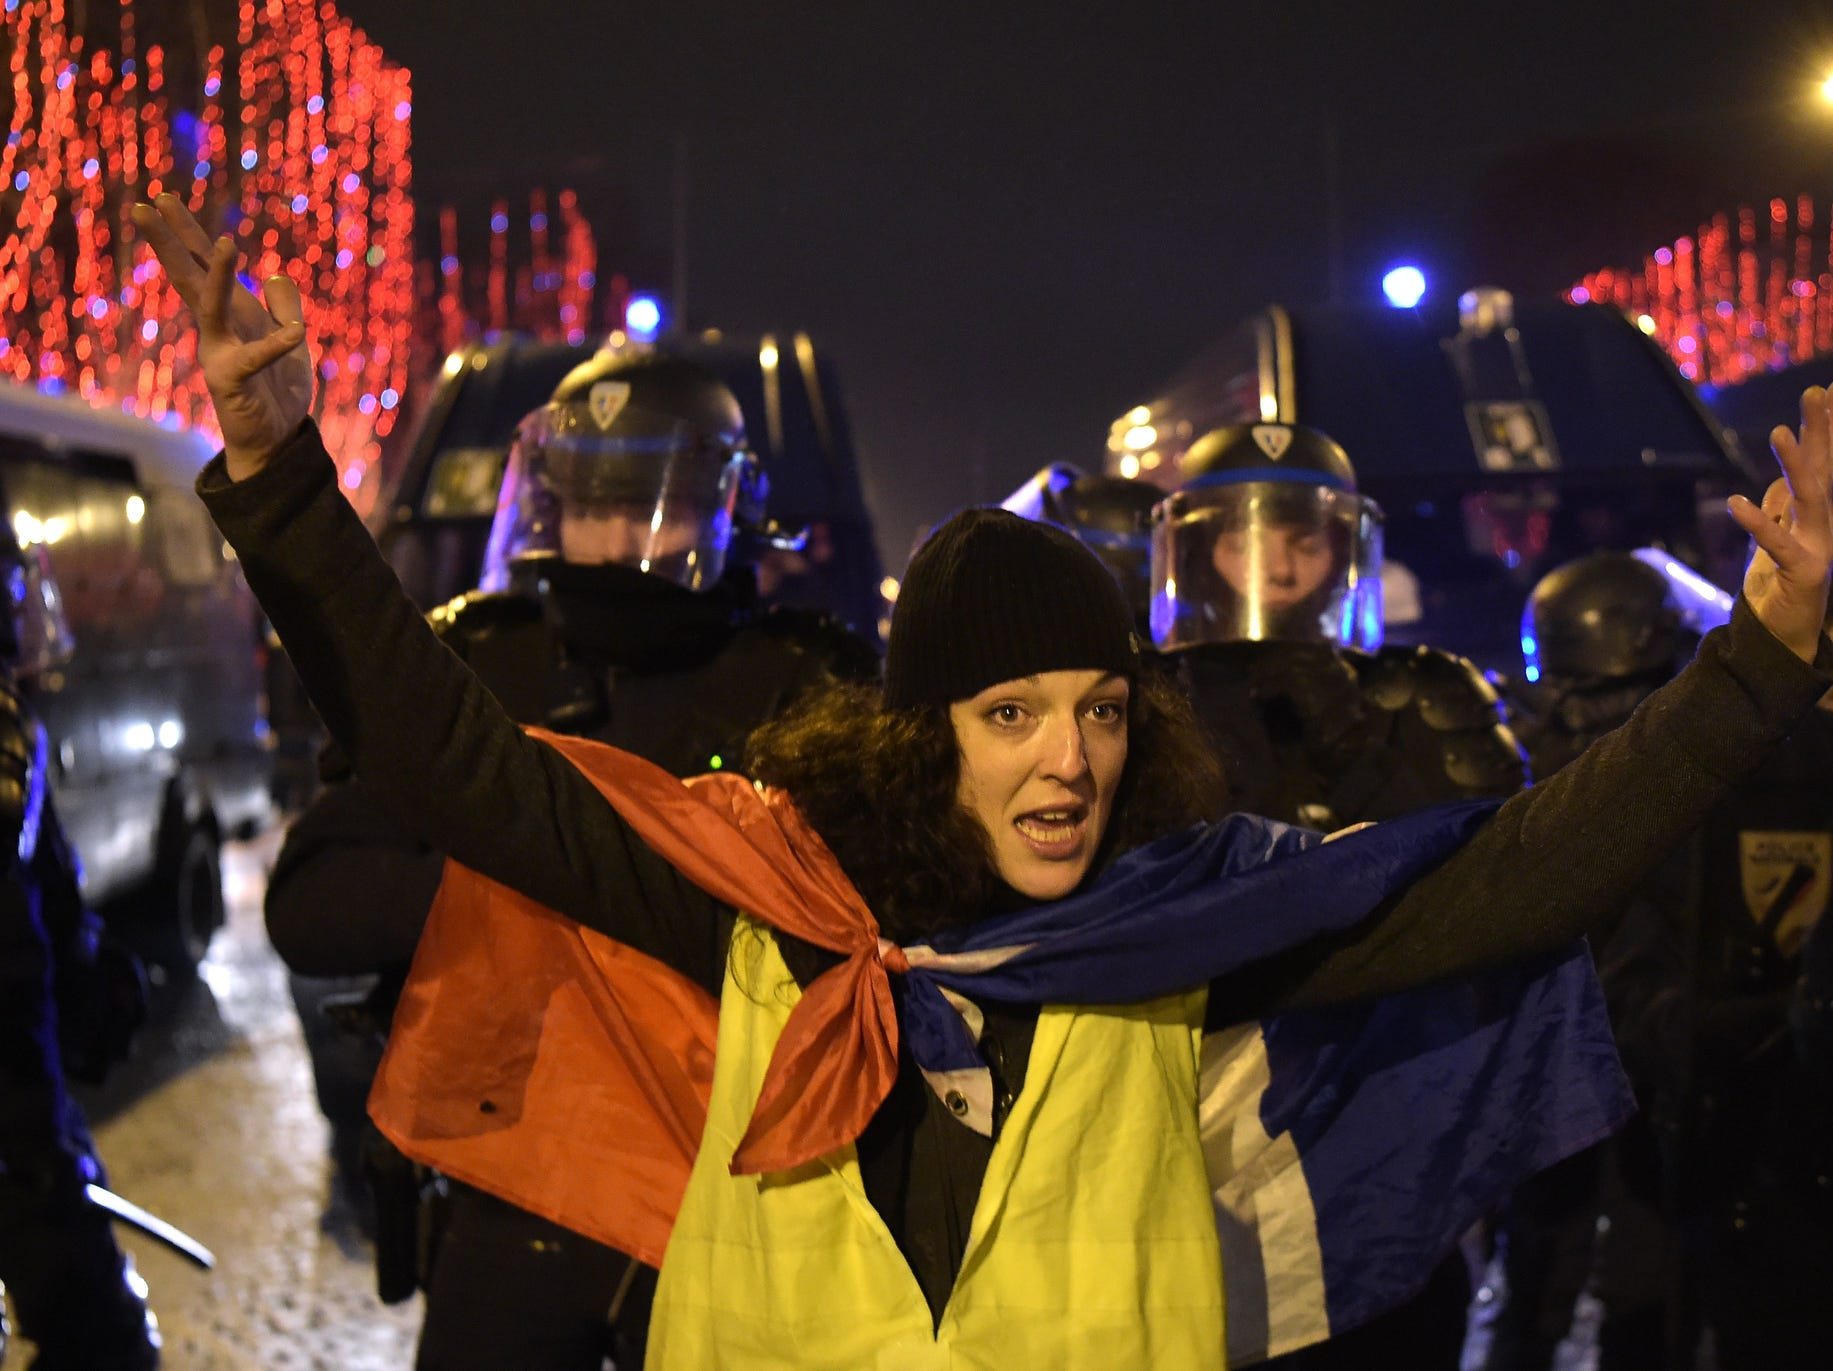 """A protestor wearing a """"Yellow vest"""" (gilet jaune) demonstrates in front of a row of French police on the Champs-Elysees in Paris during New Year's Celebrations. The yellow vests movement originally started as a protest about planned fuel hikes but has morphed into a mass protest against President's policies and top-down style of governing."""